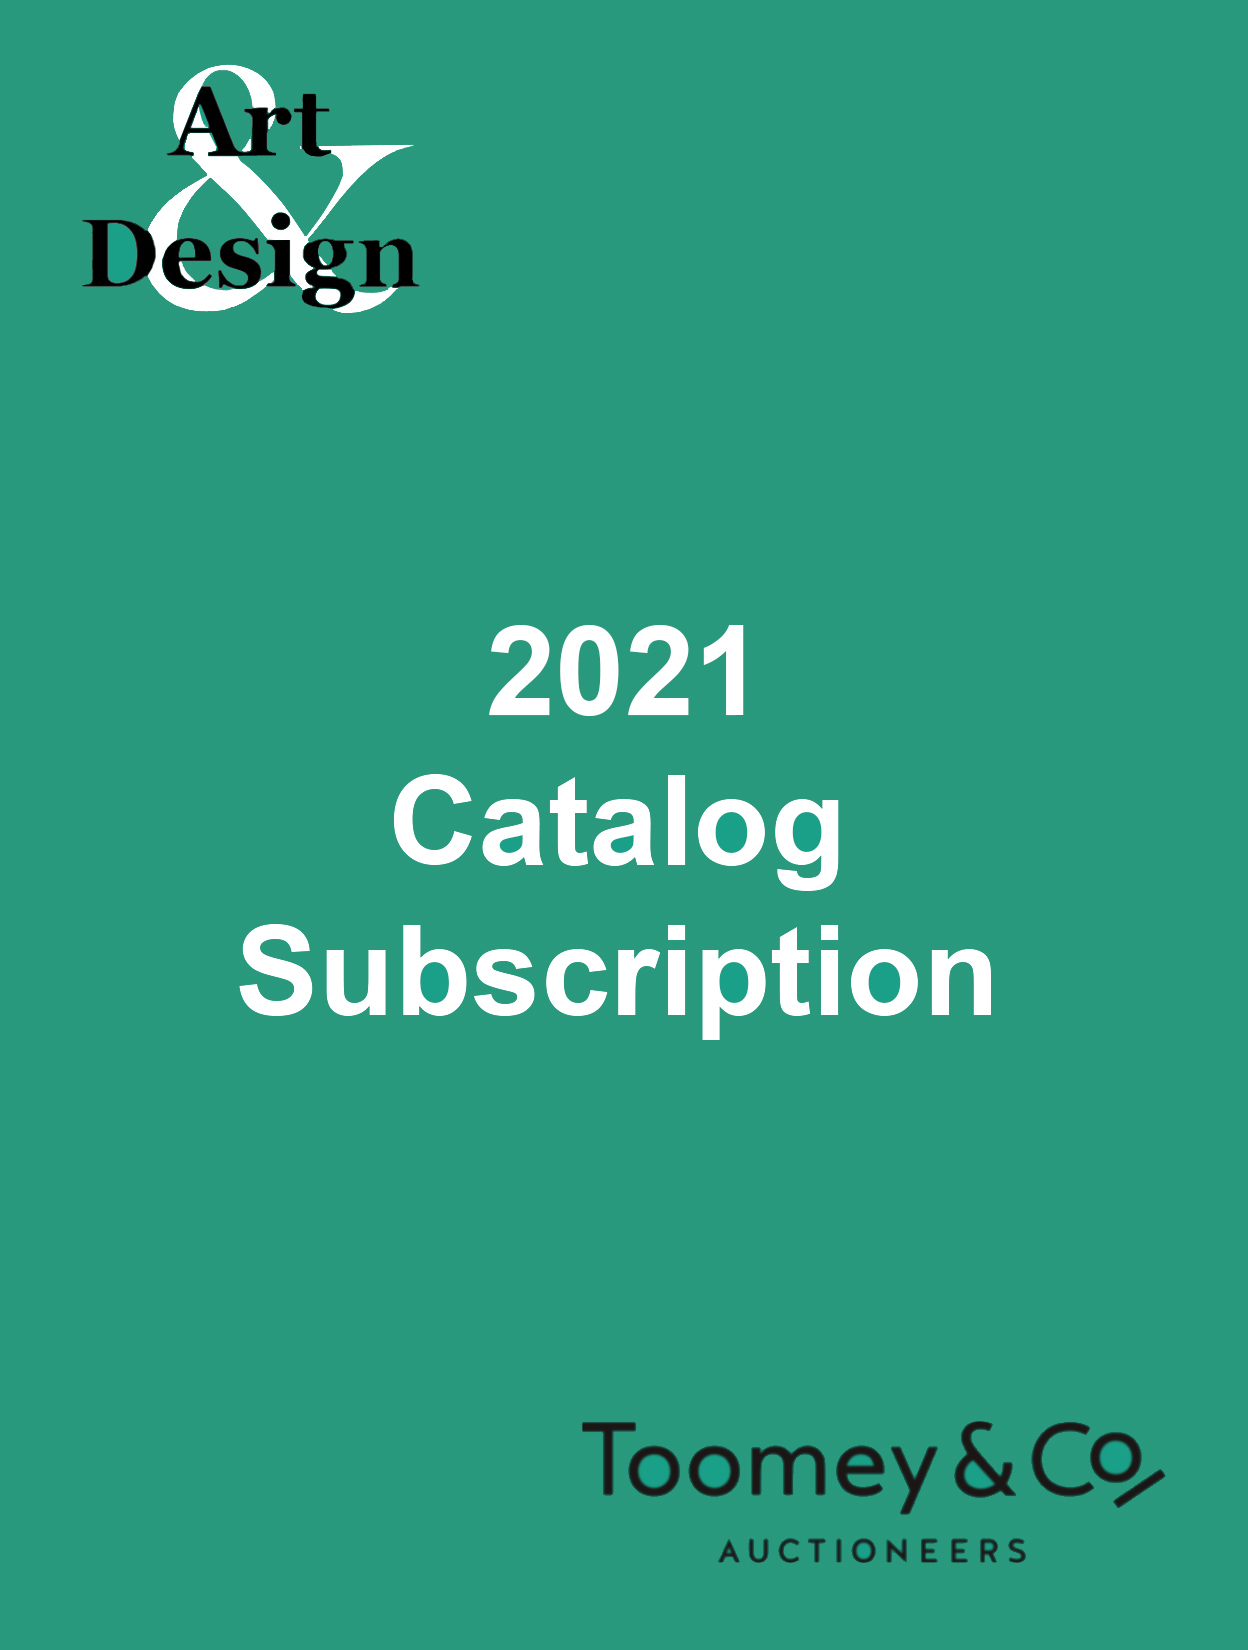 2021 Catalog Subscription, Art and Design